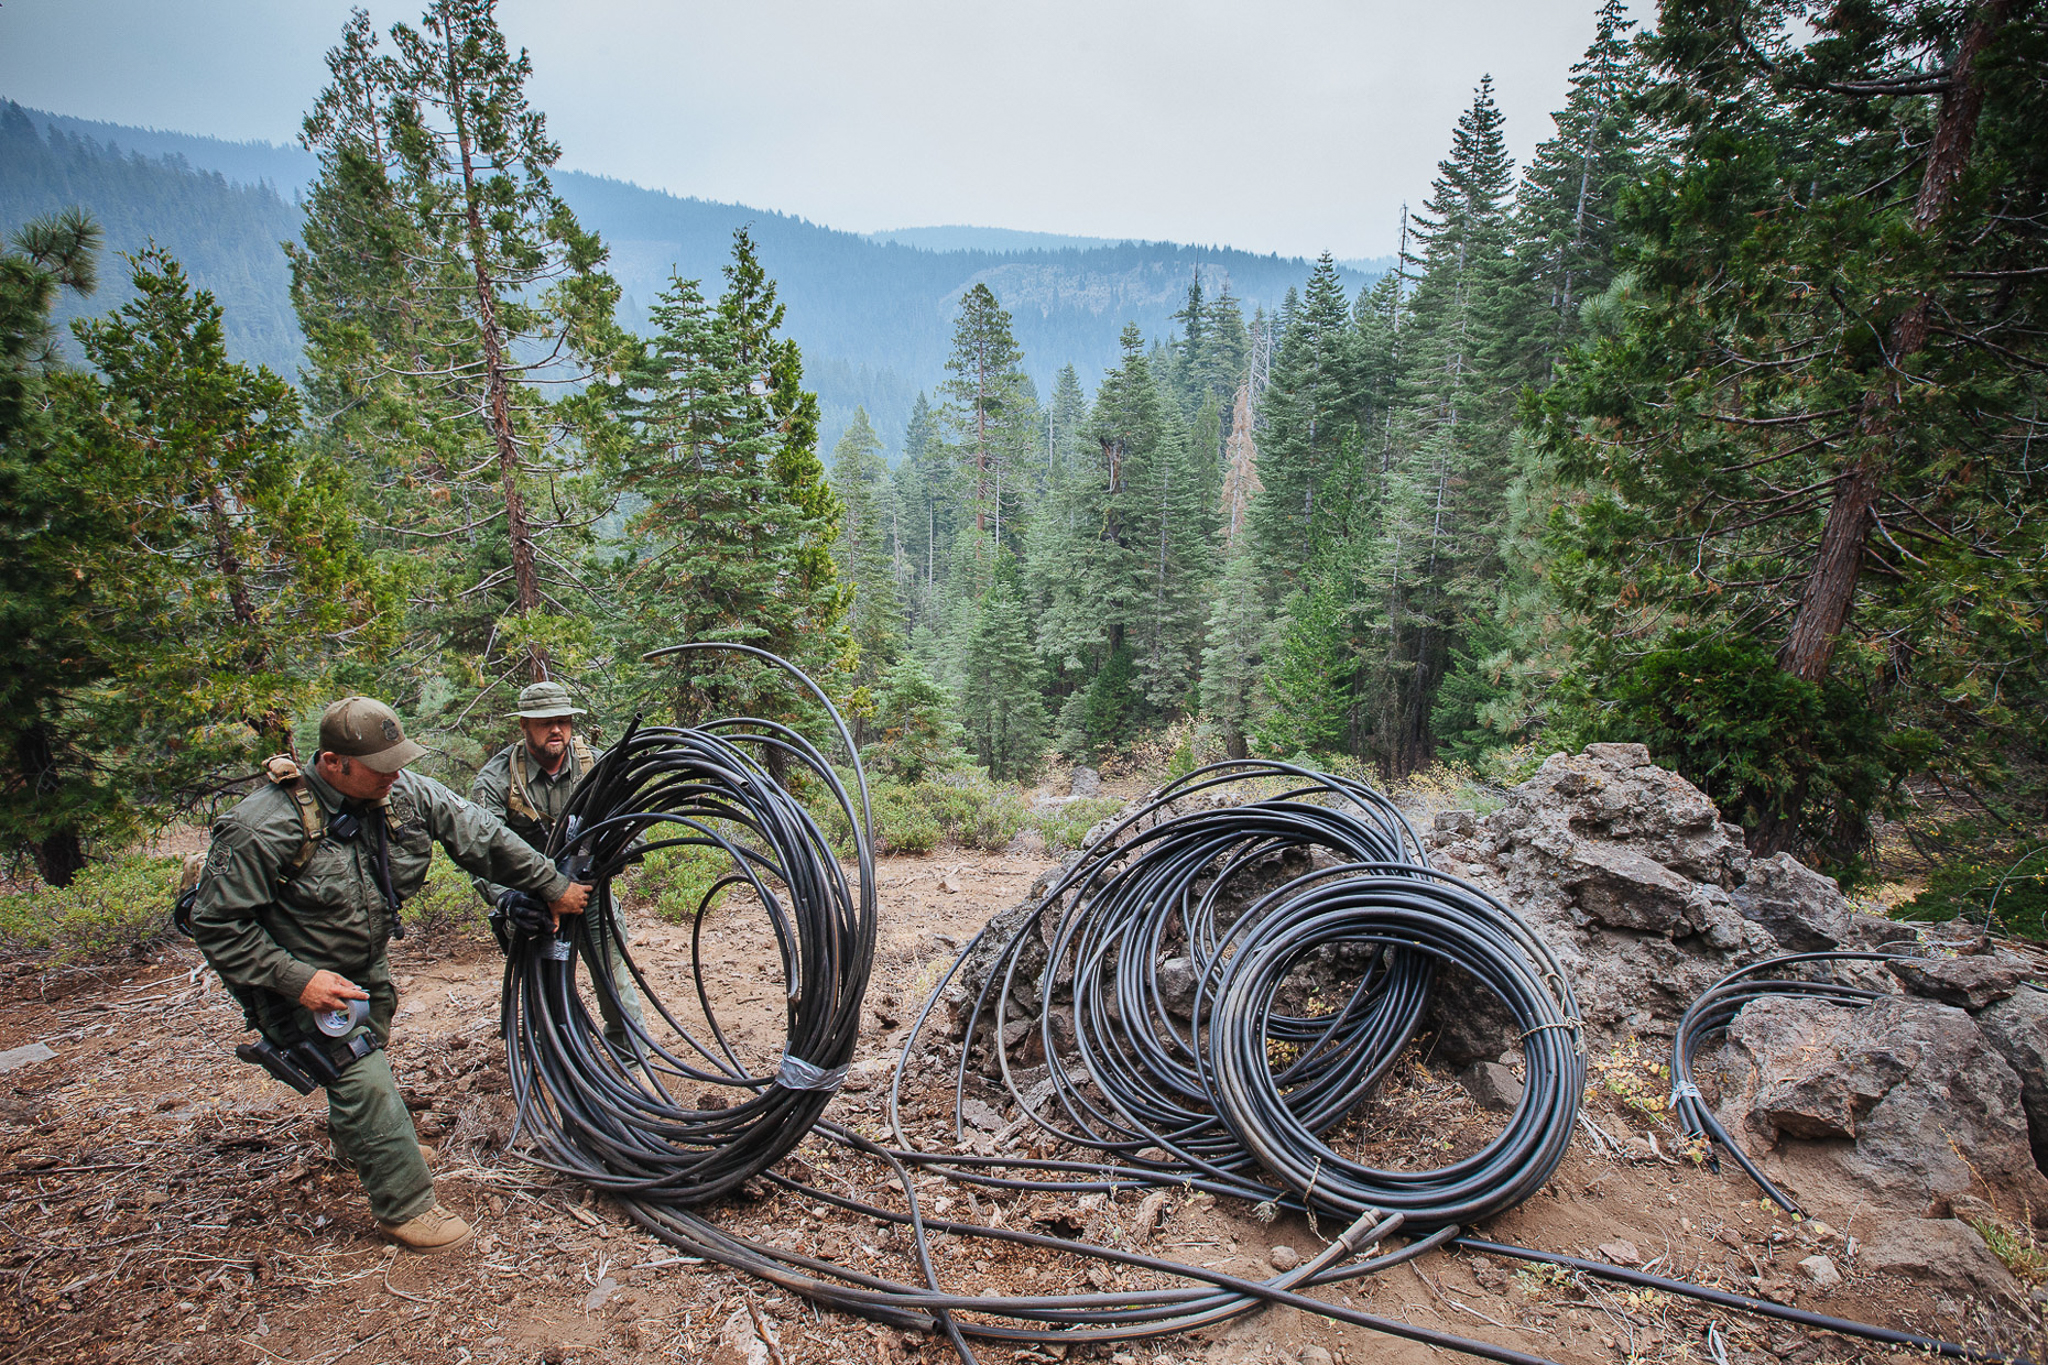 Law-enforcement officers pile coils of irrigation tubing used in marijuana grows. A recent study estimated that water theft for marijuana grows is equal to some 430 million liters per square kilometer of crop, roughly the same amount of water needed per acre in an almond orchard.